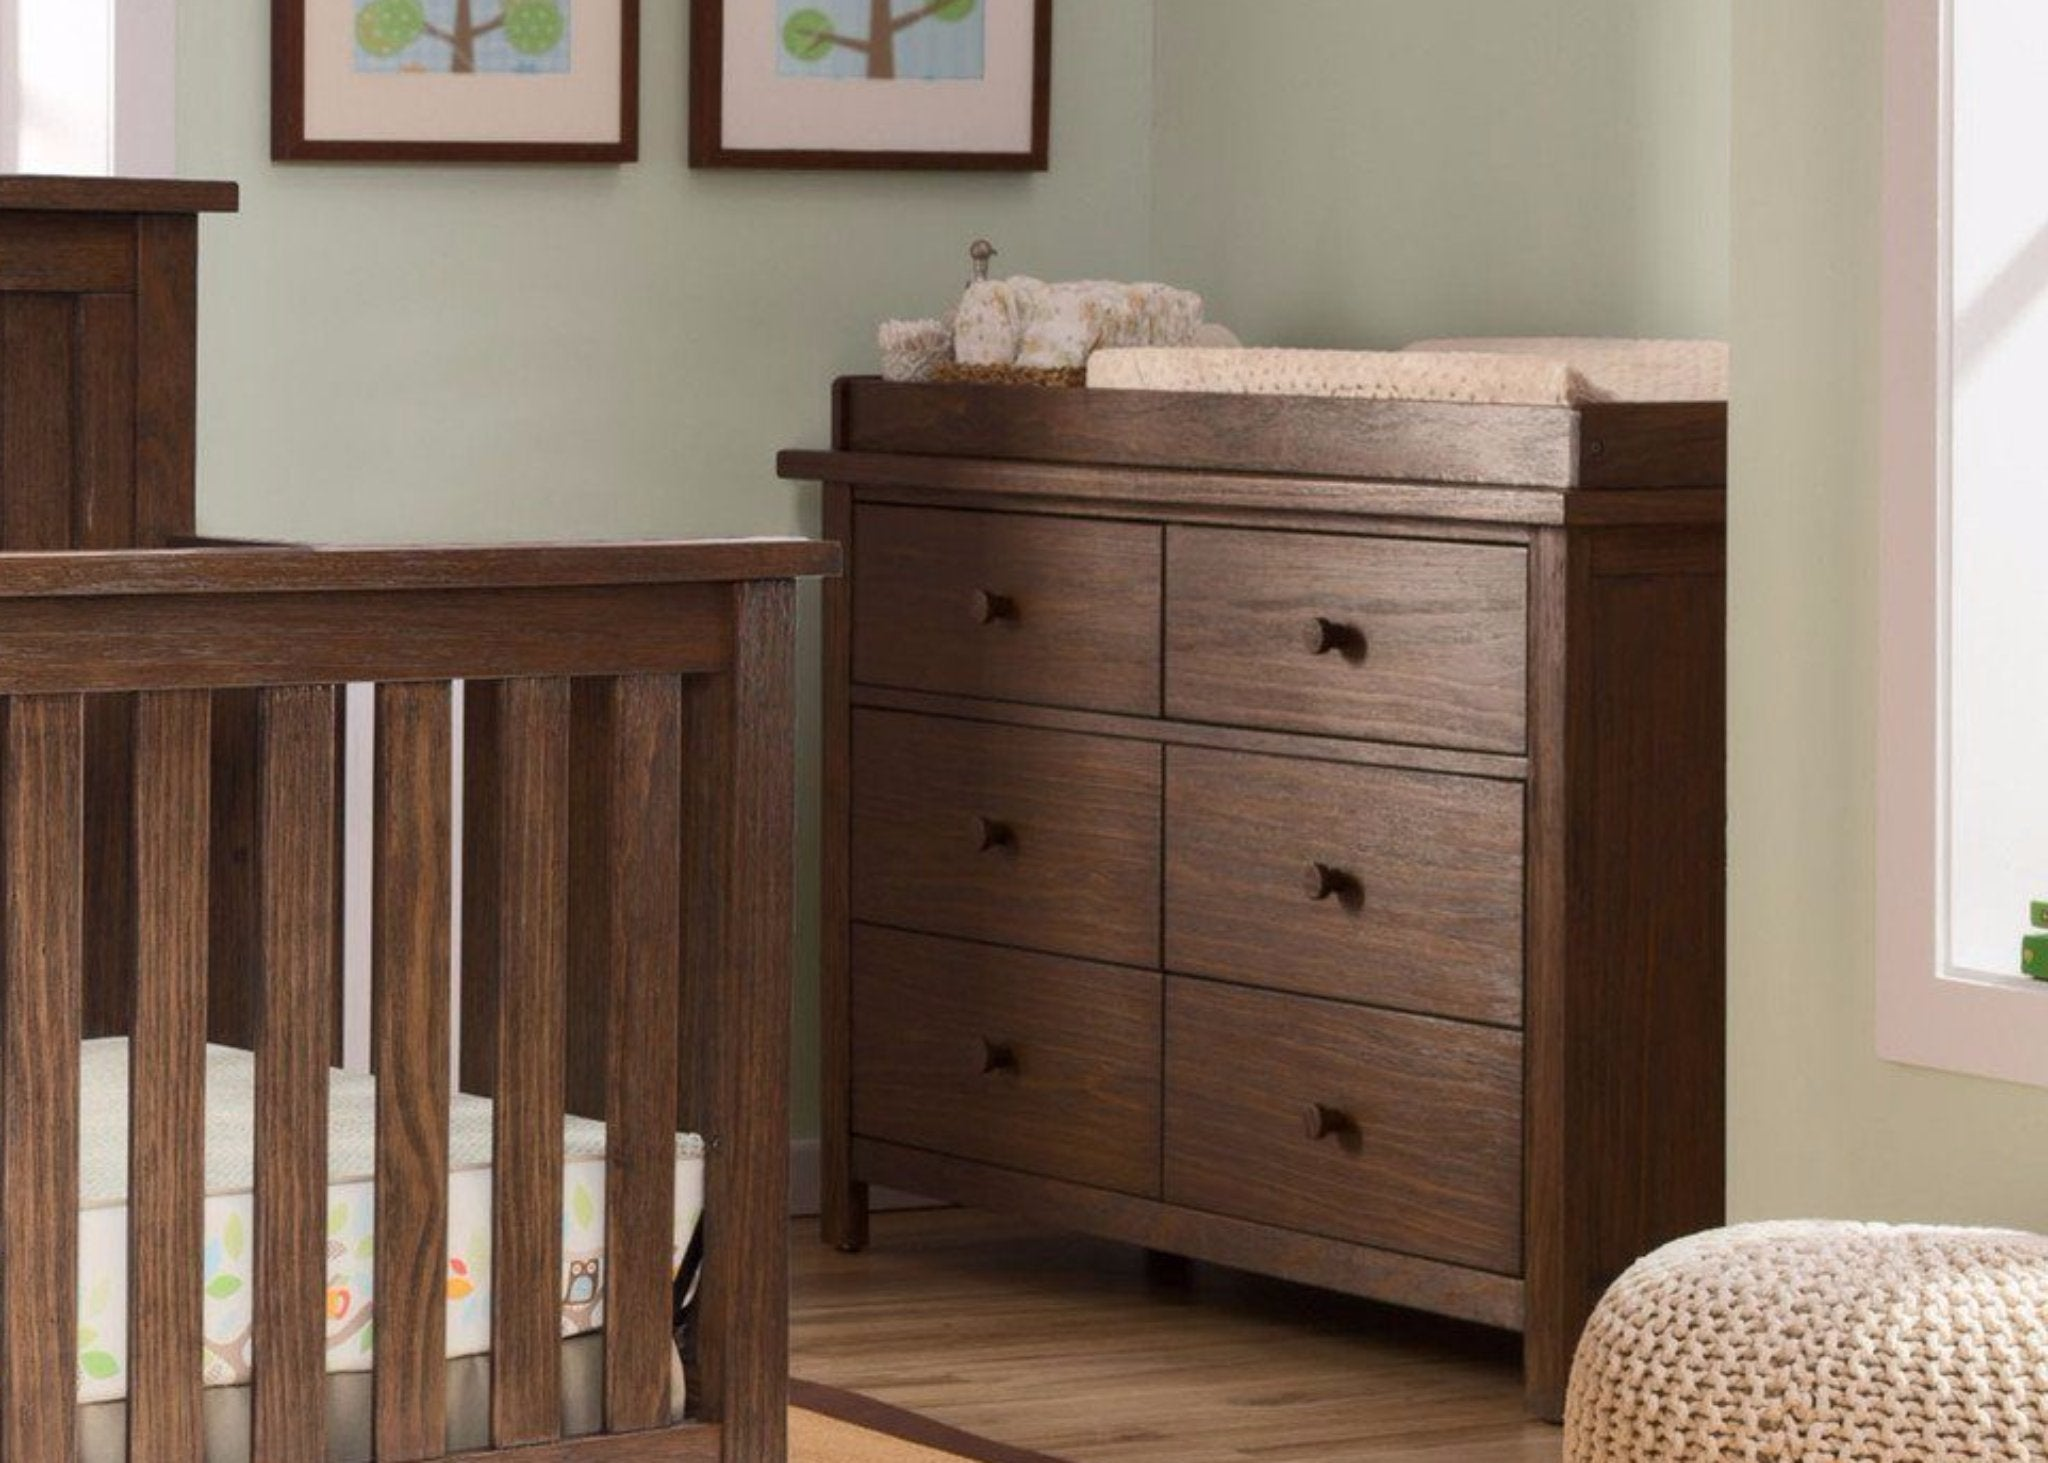 Serta Rustic Oak (229) Northbrook 6 Drawer Dresser, Room View b0b